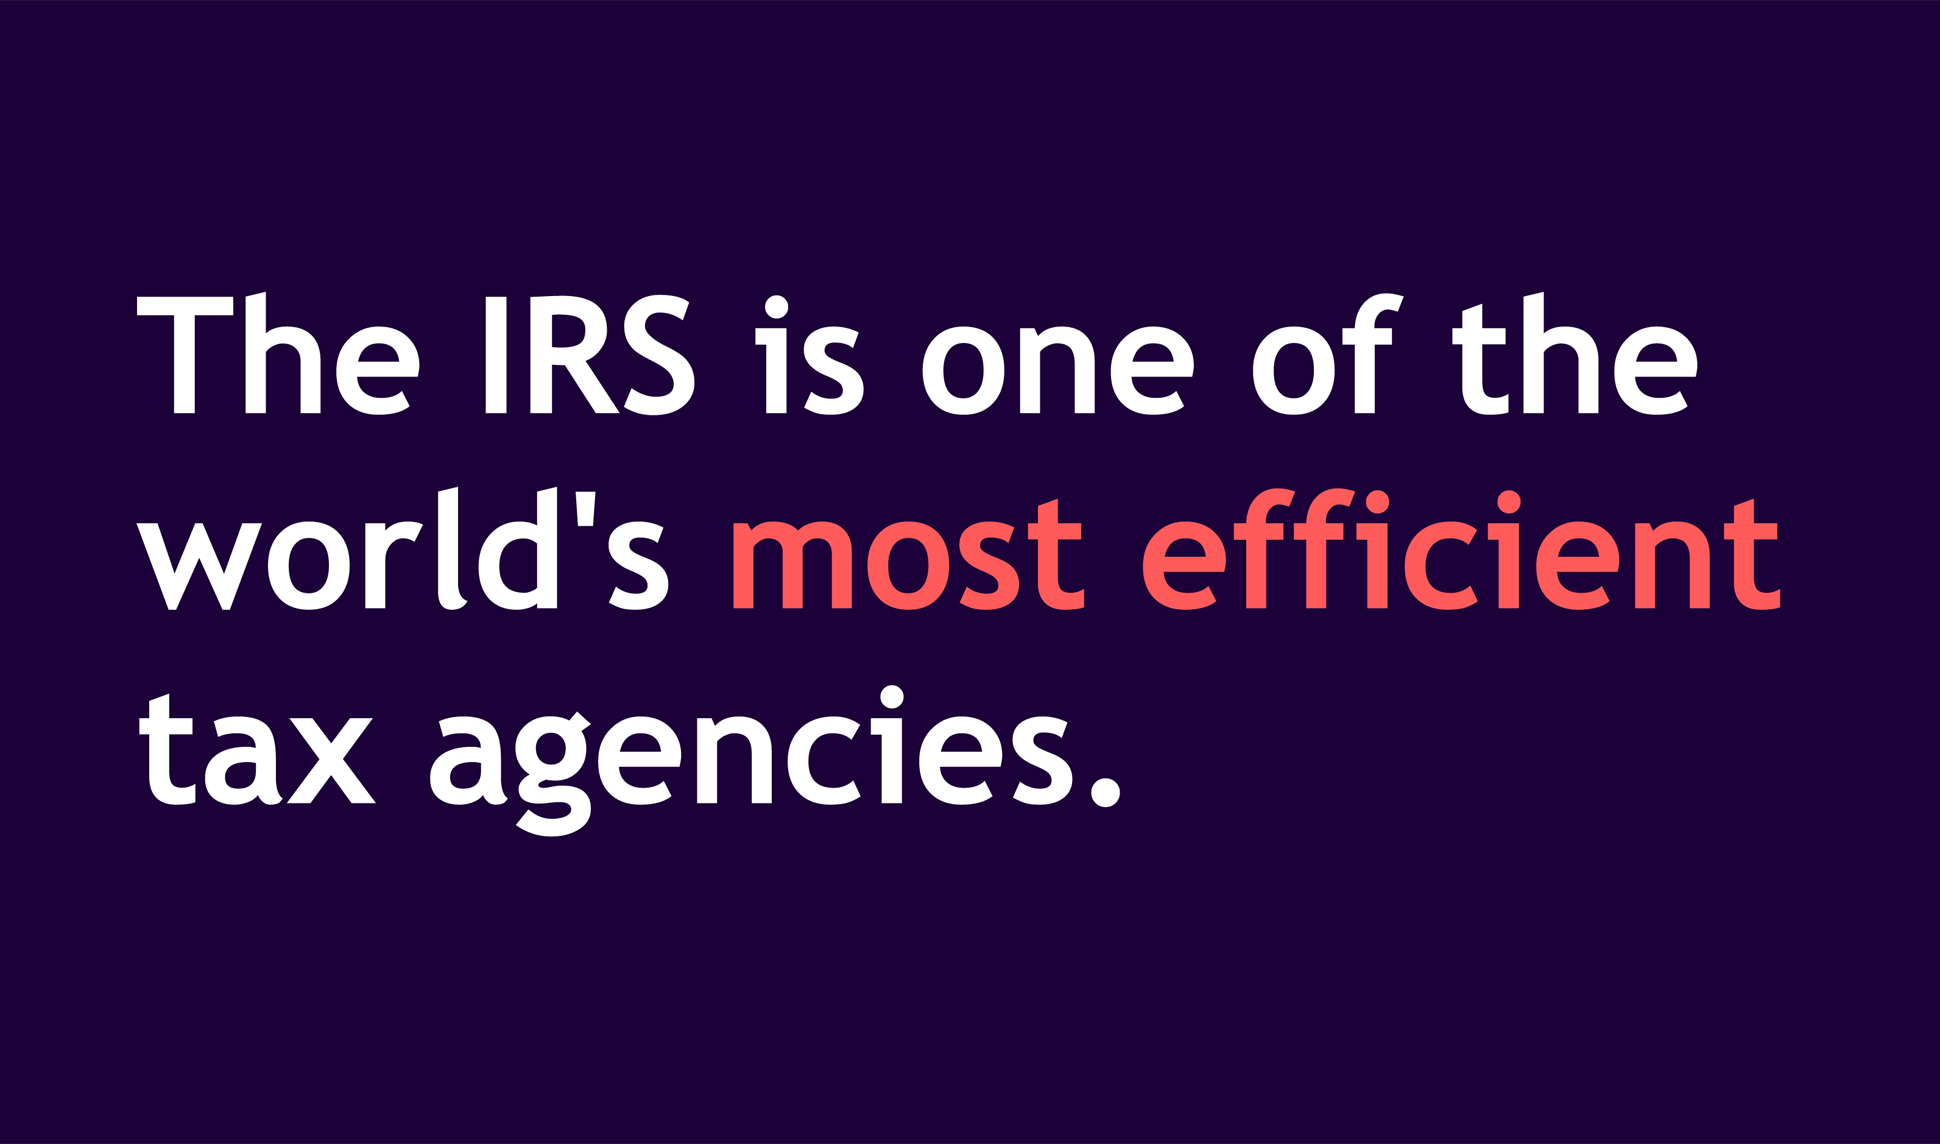 A page from a tax design challenge submission. The IRS is one of the world's most efficient tax agencies.